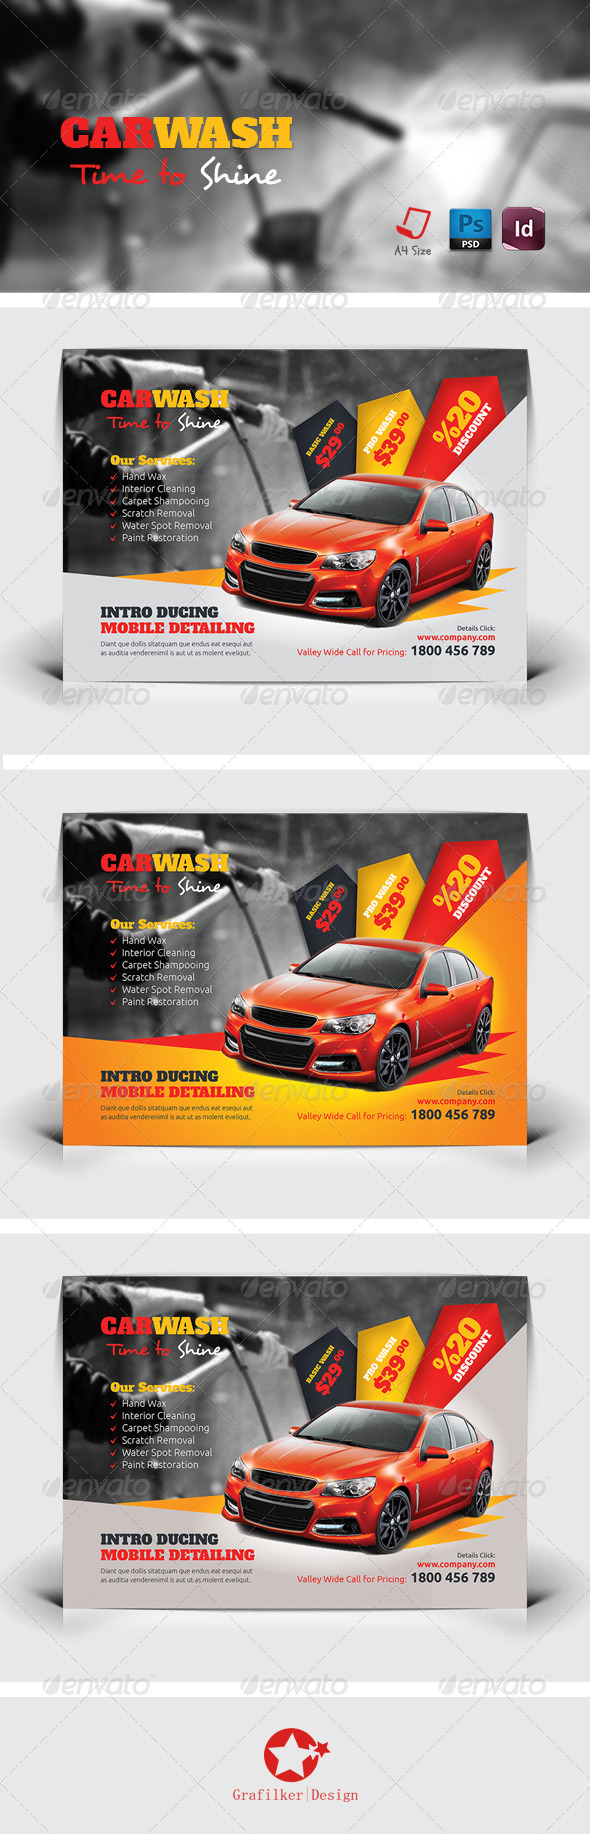 Car Wash Flyer Templates by grafilker – Auto Detailing Flyer Template